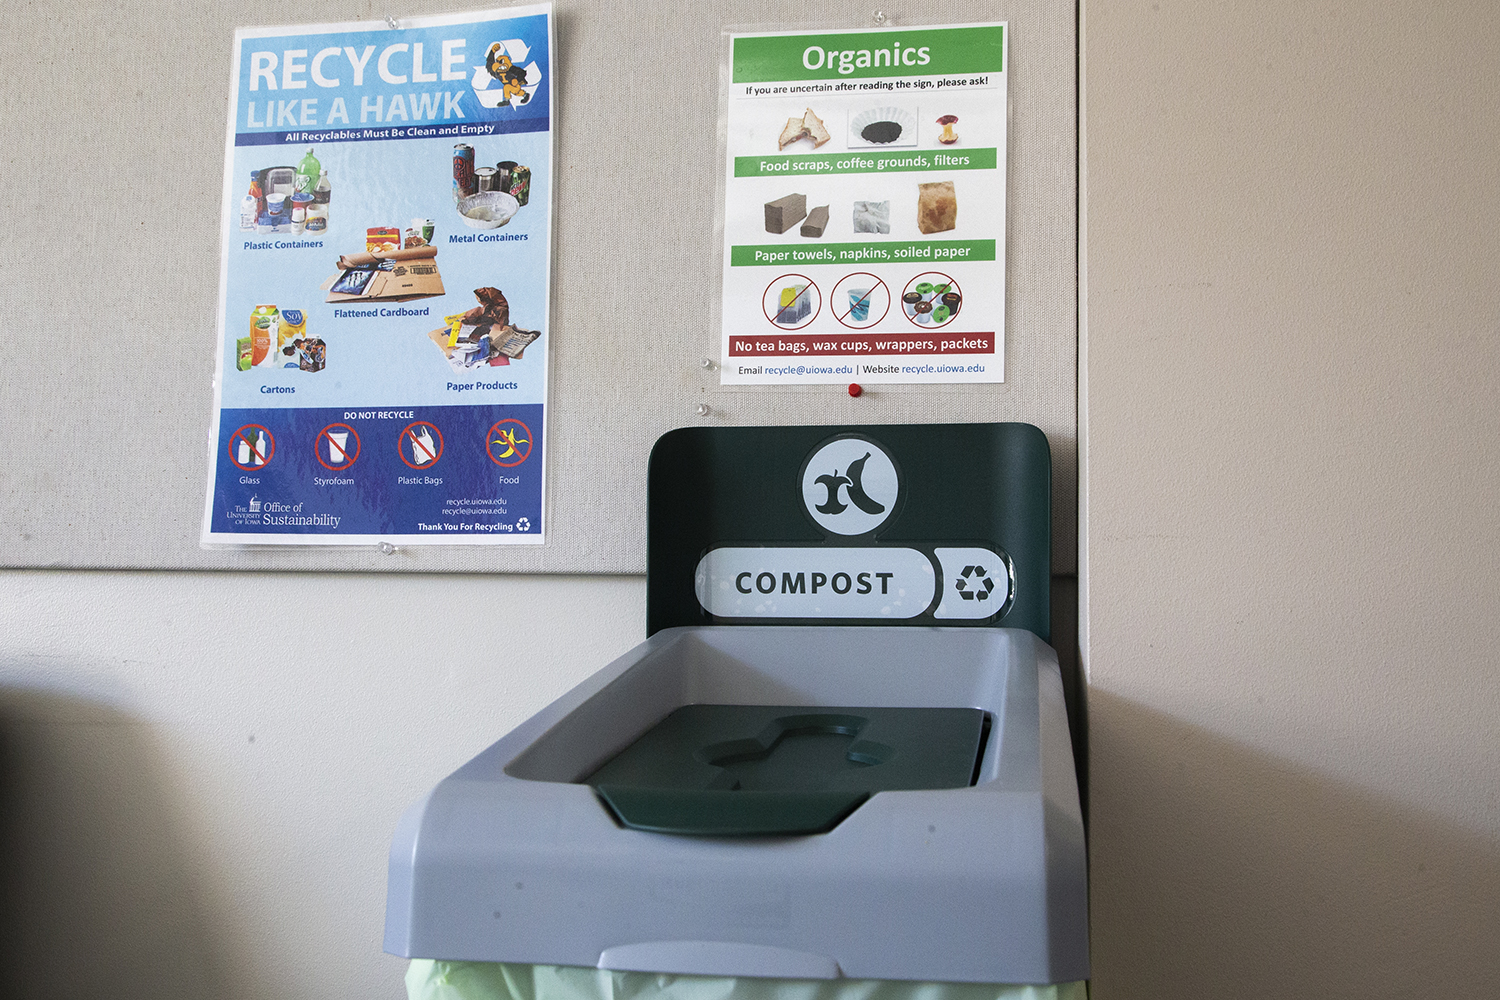 A compost bin is seen in the staff and faculty lounge of the Pappajon Business Building on Tuesday, February 11, 2020. The bins were introduced in January to allow items like paper towels and pizza boxes to be recycled.